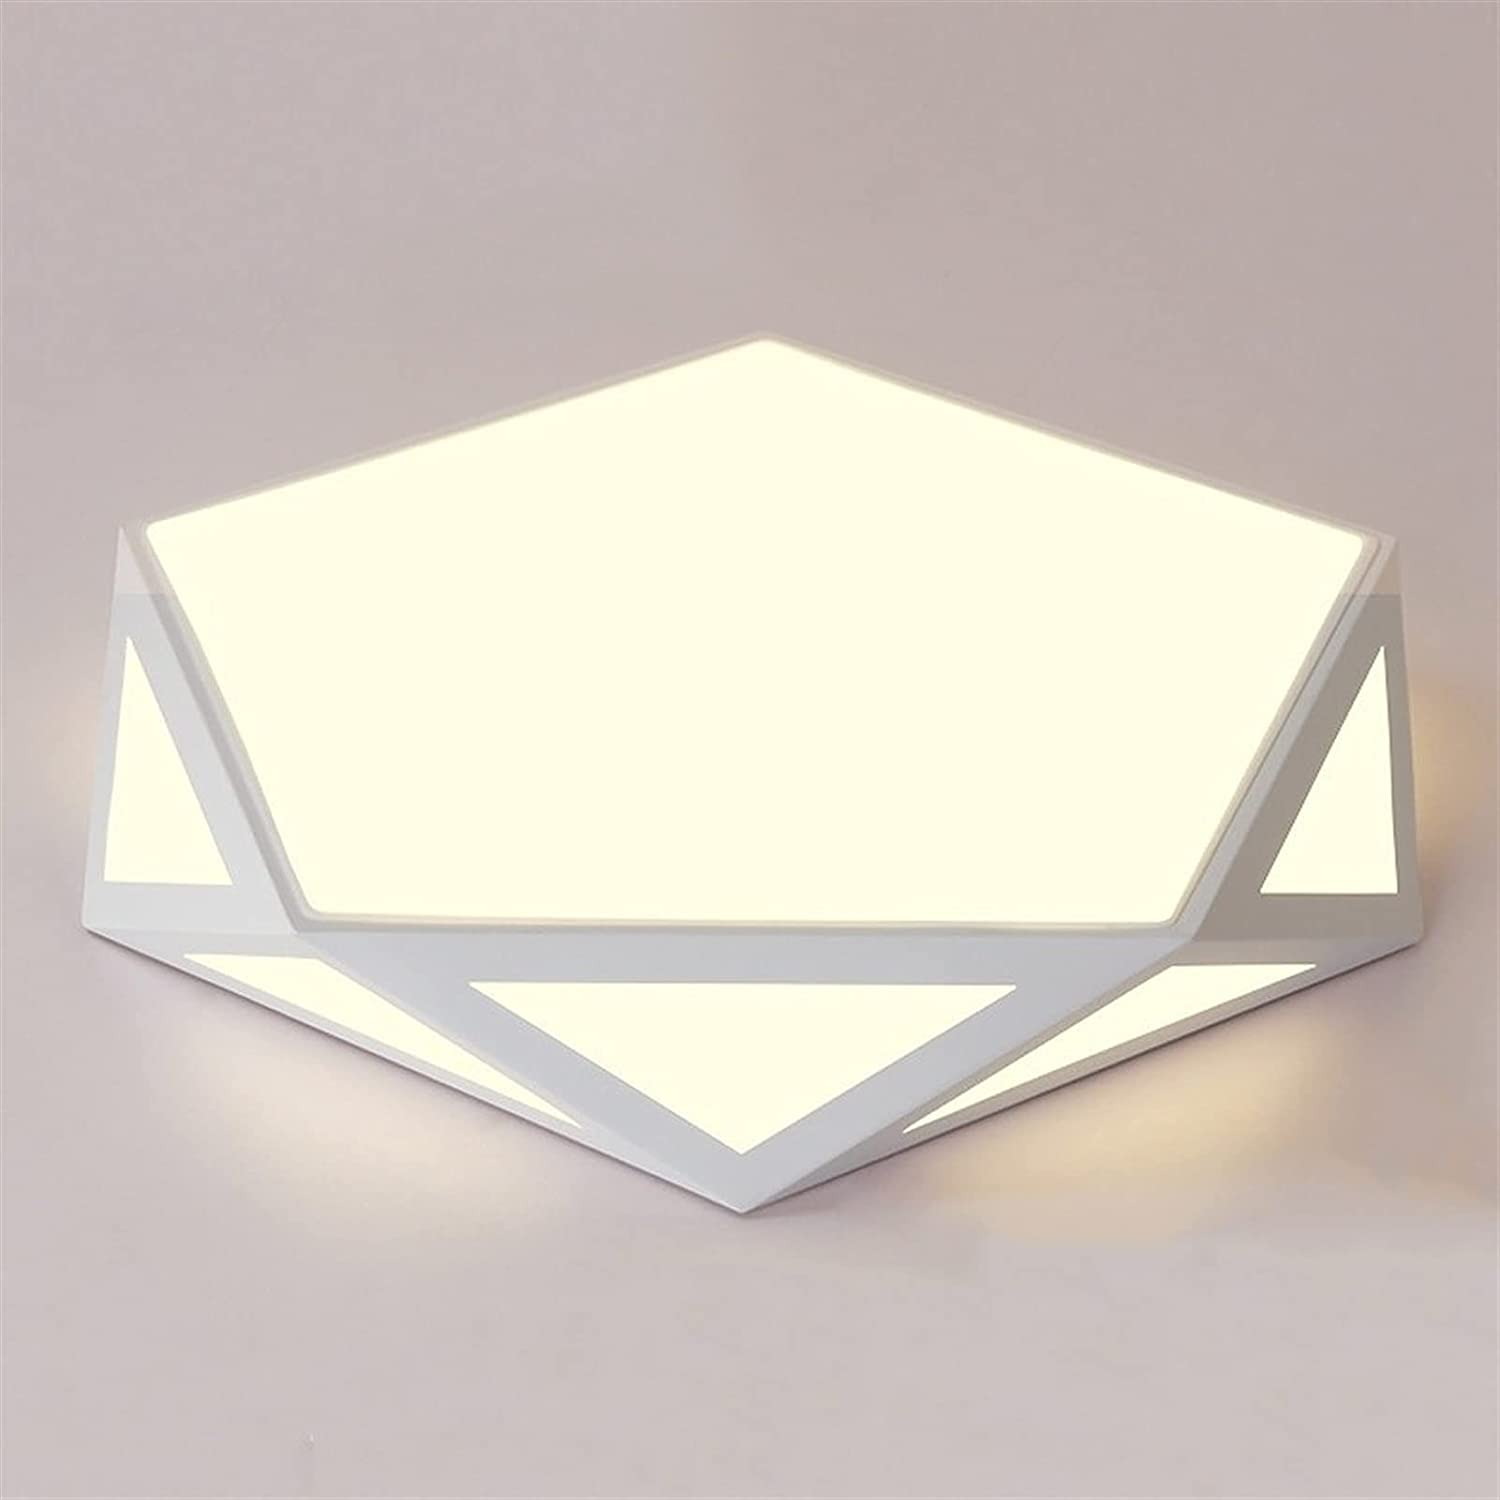 PDDUU LED Ceiling Lamp Modern Lamps Kitchen Geometric for High quality New Orleans Mall Hollow